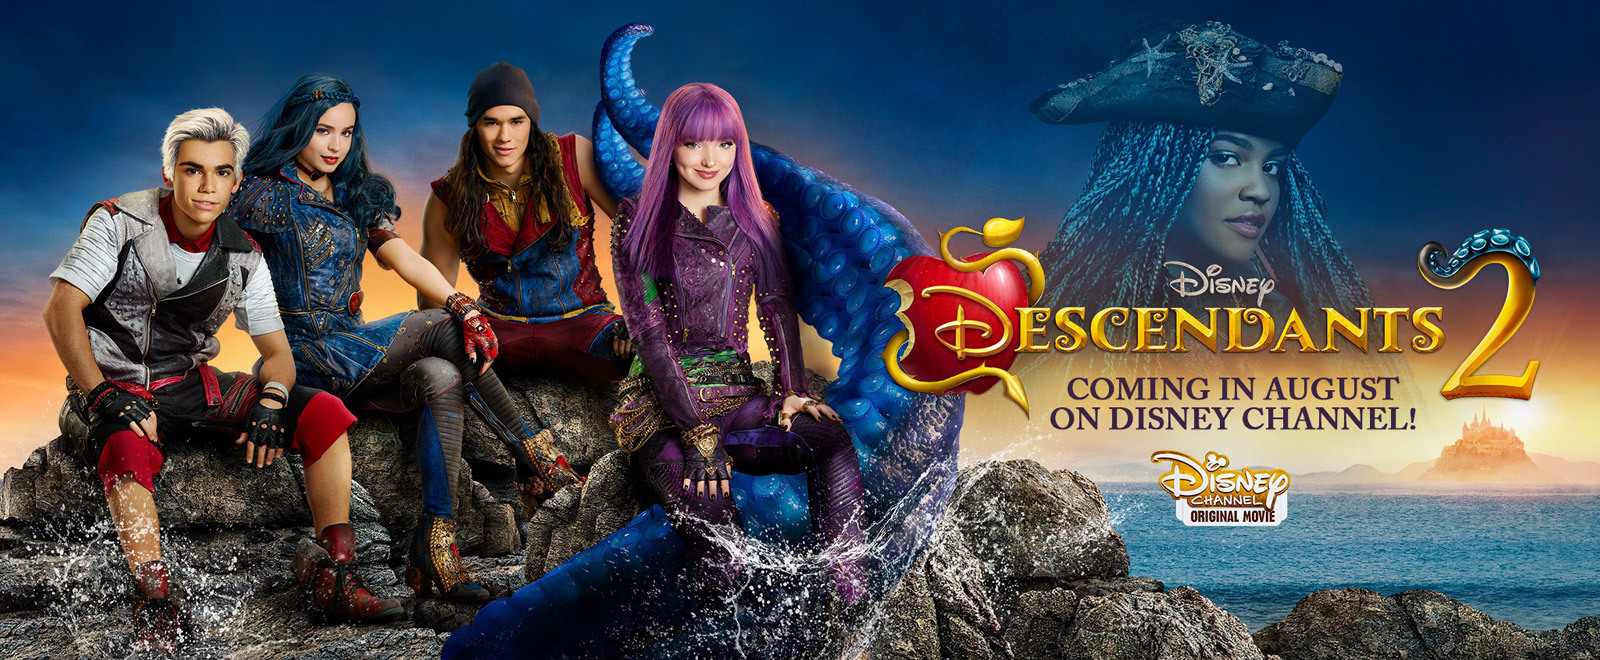 Disney-Descendants-2-Banner